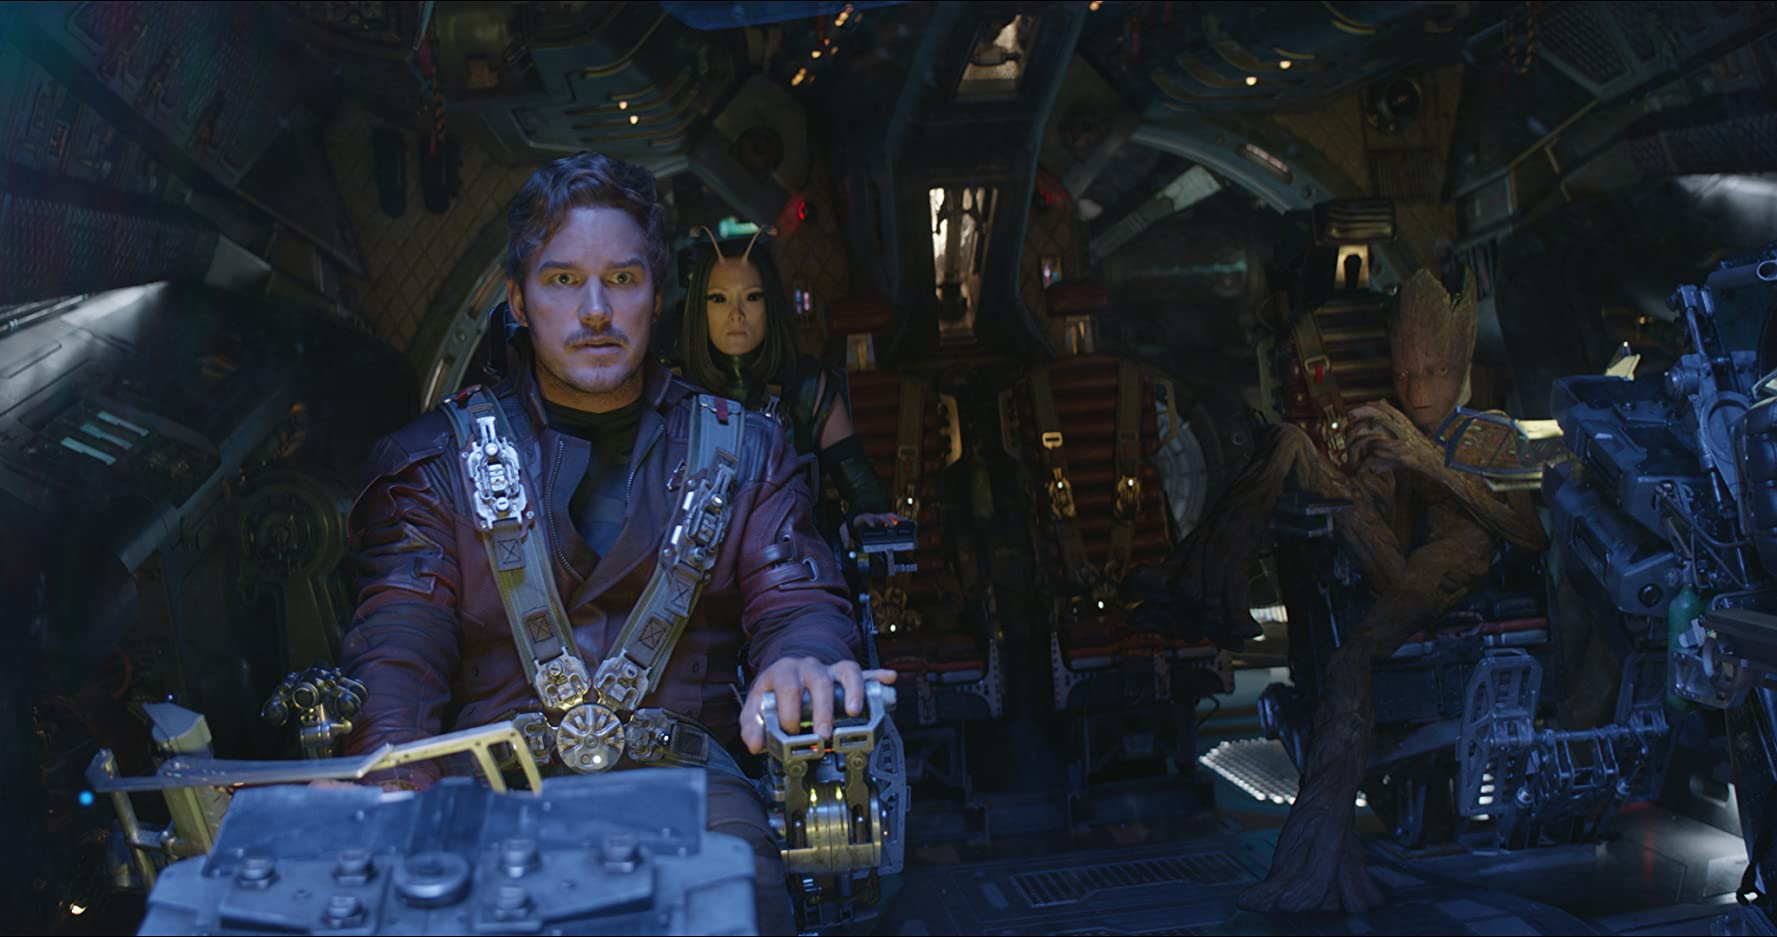 Vin Diesel, Chris Pratt, and Pom Klementieff in Avengers: Infinity War (2018)